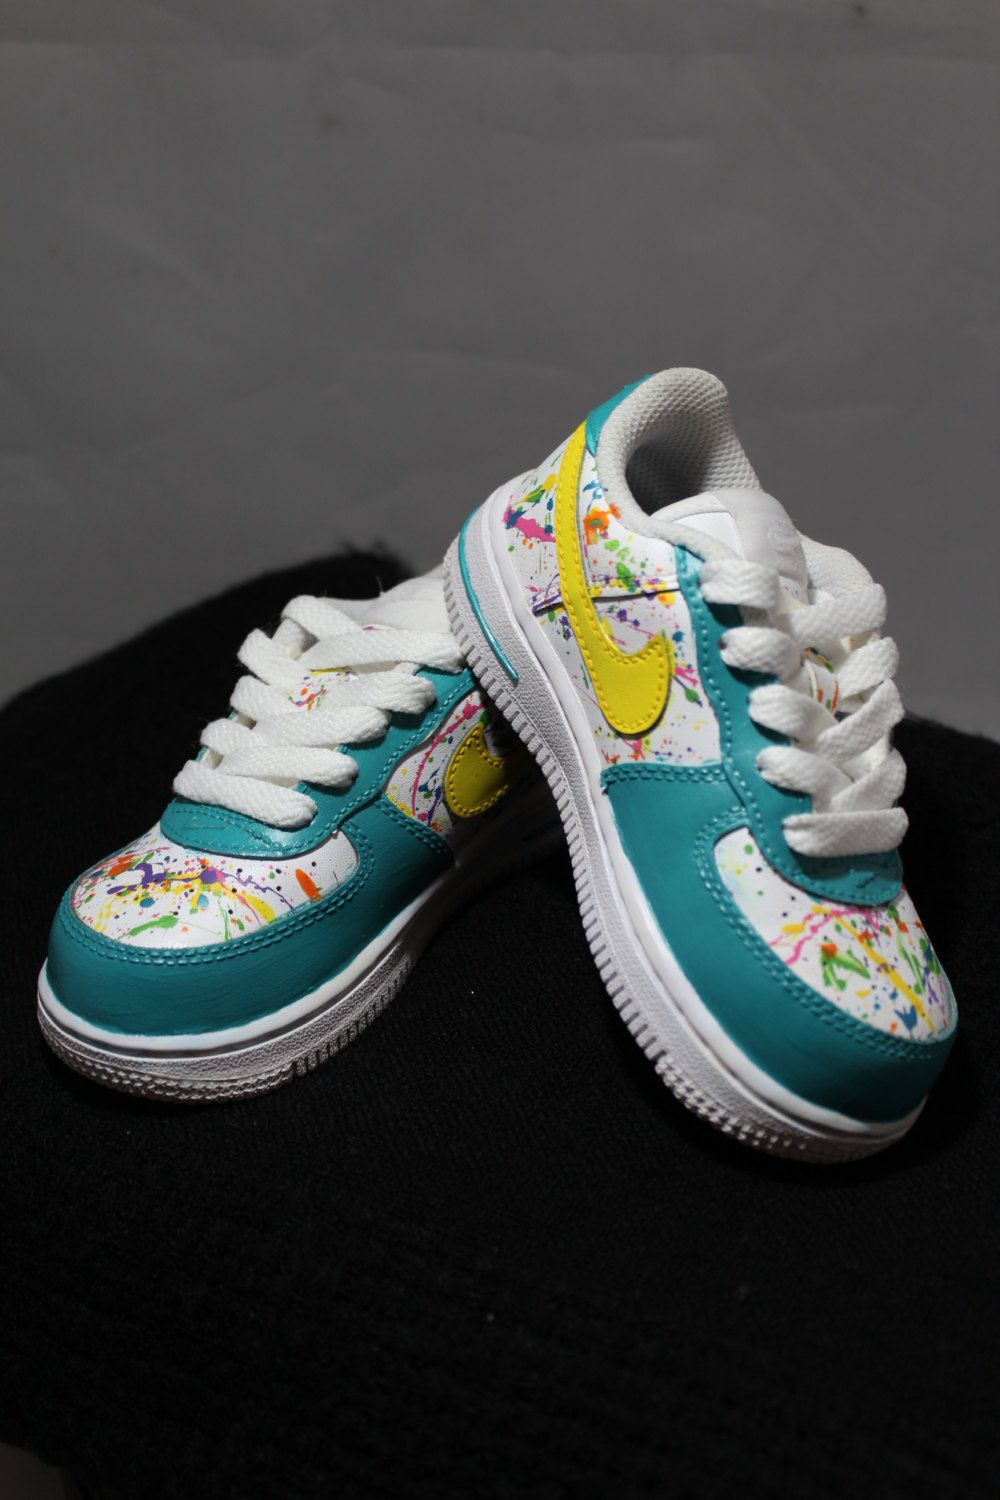 Custom Painted Air Force Ones Hand Painted Tennis Shoes